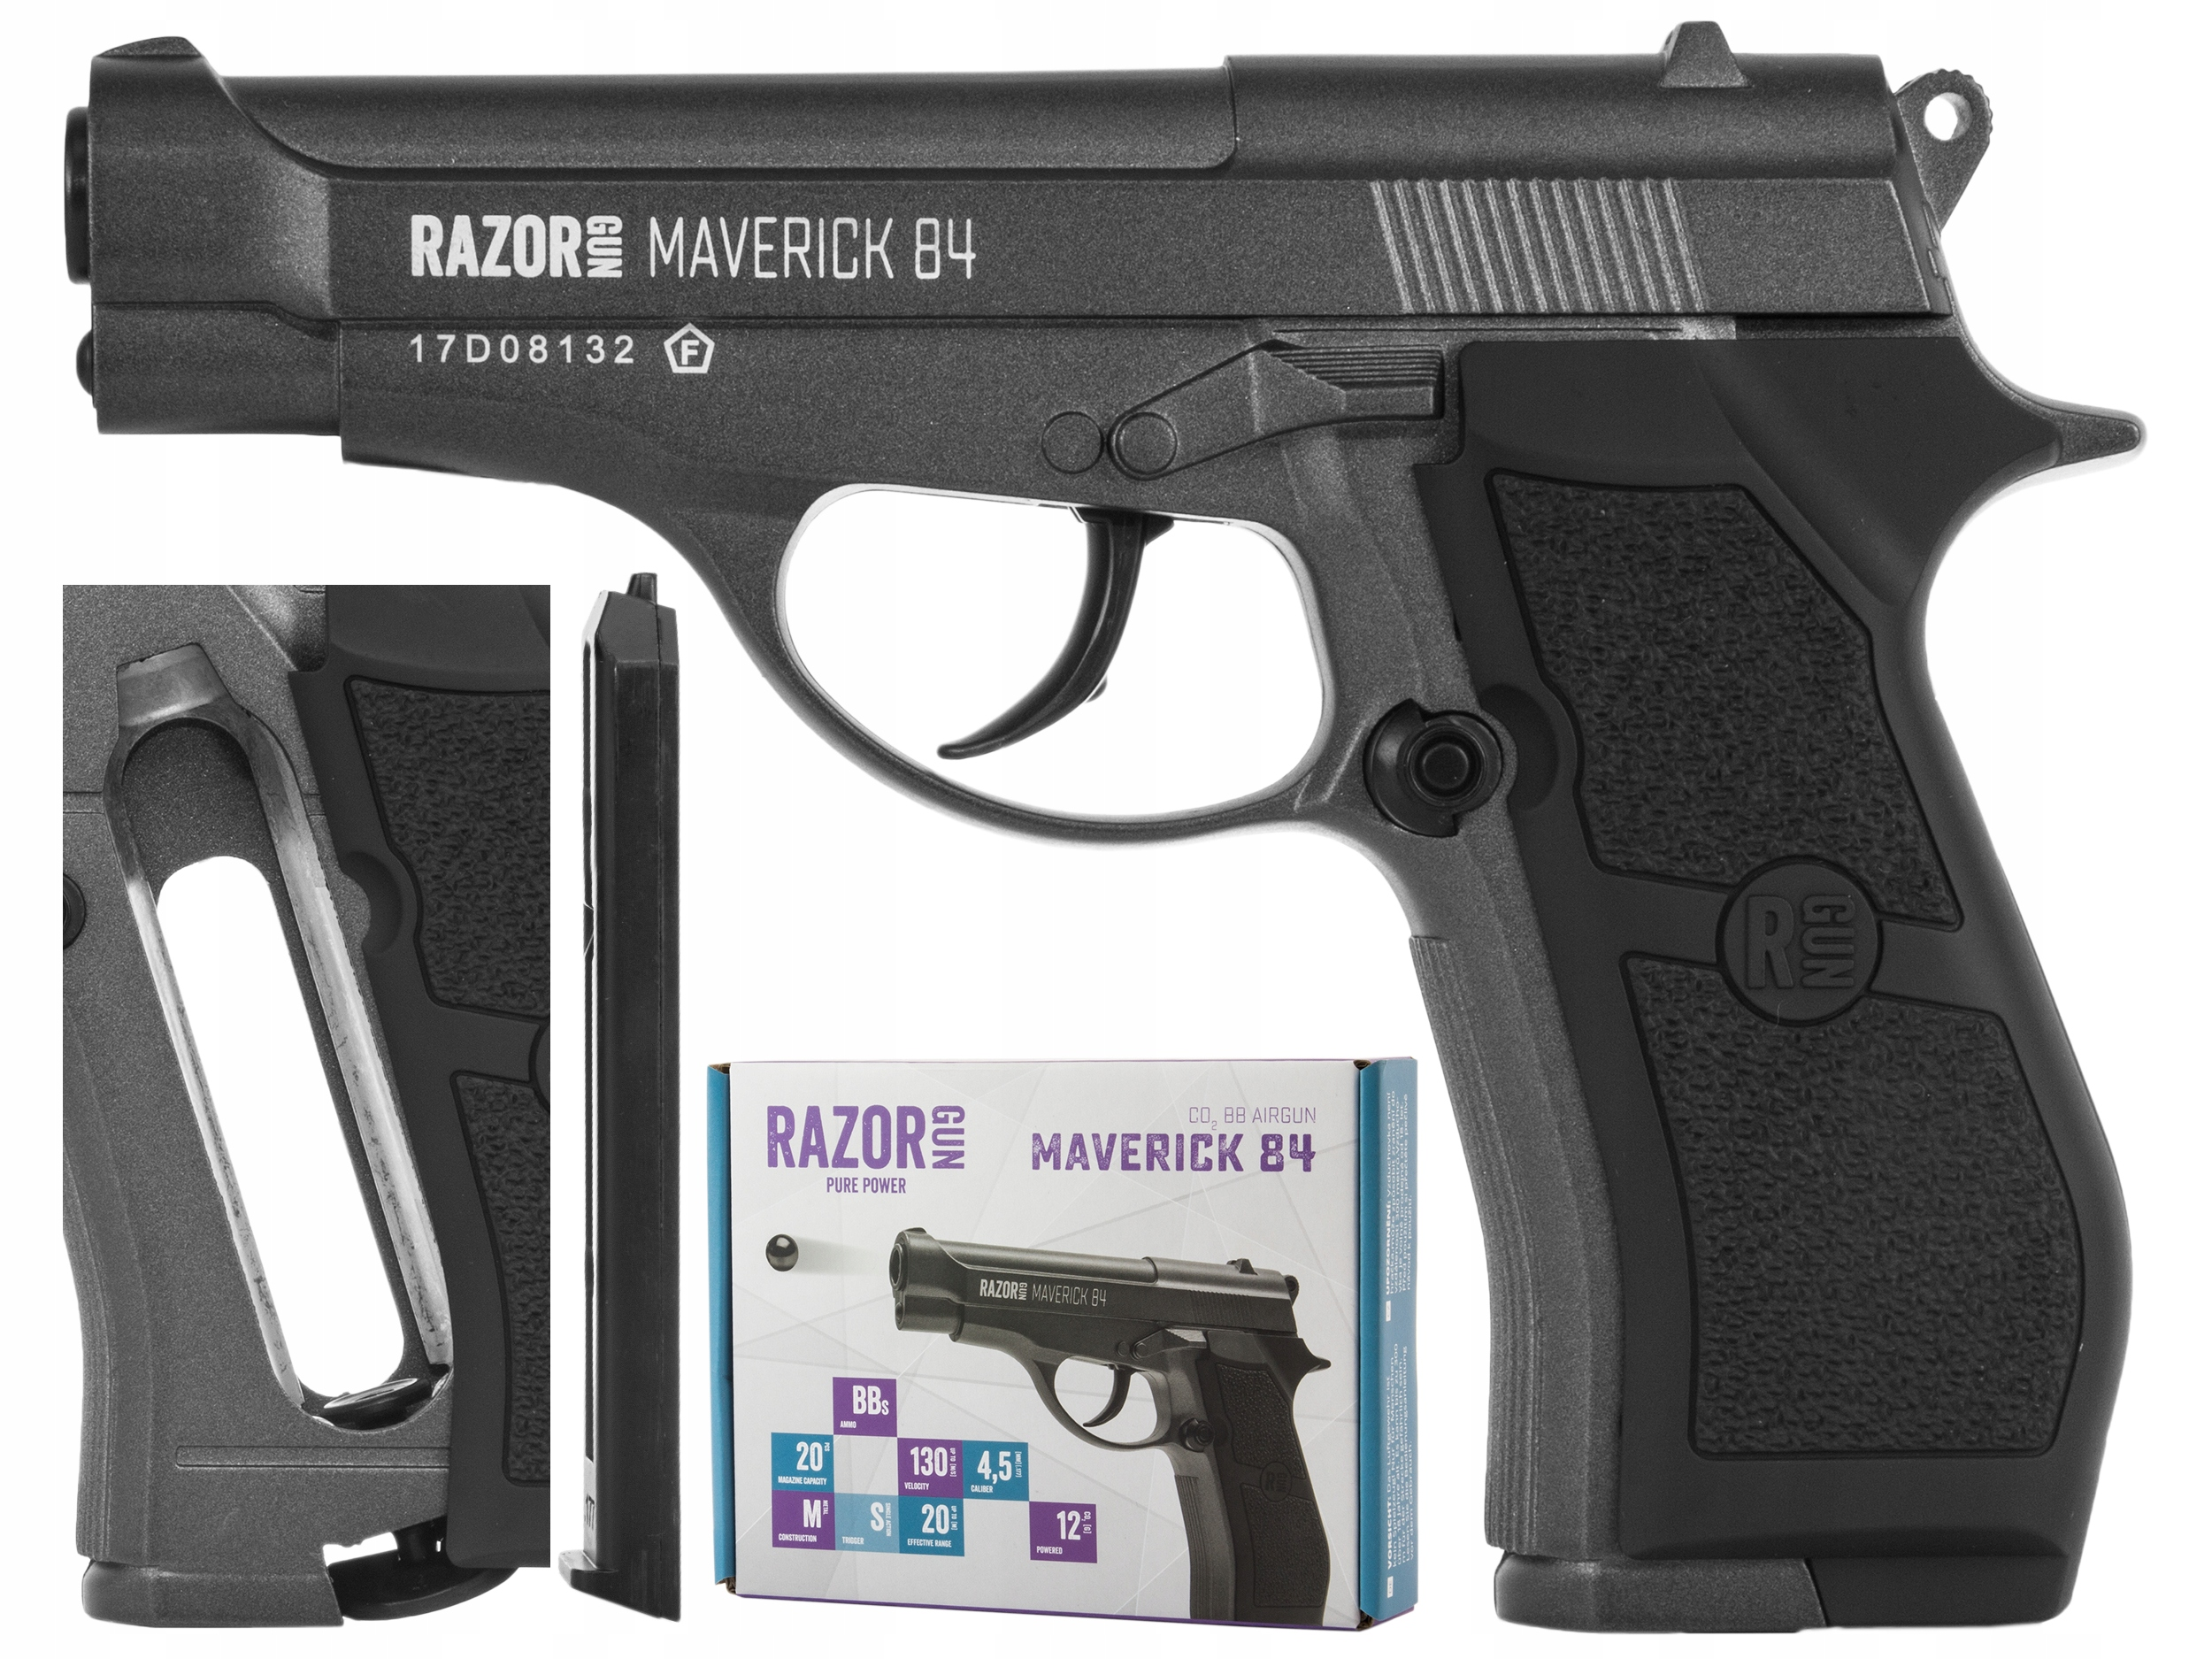 Pistolet wiatrówka RazorGun Maverick 84 4,5 mm BB